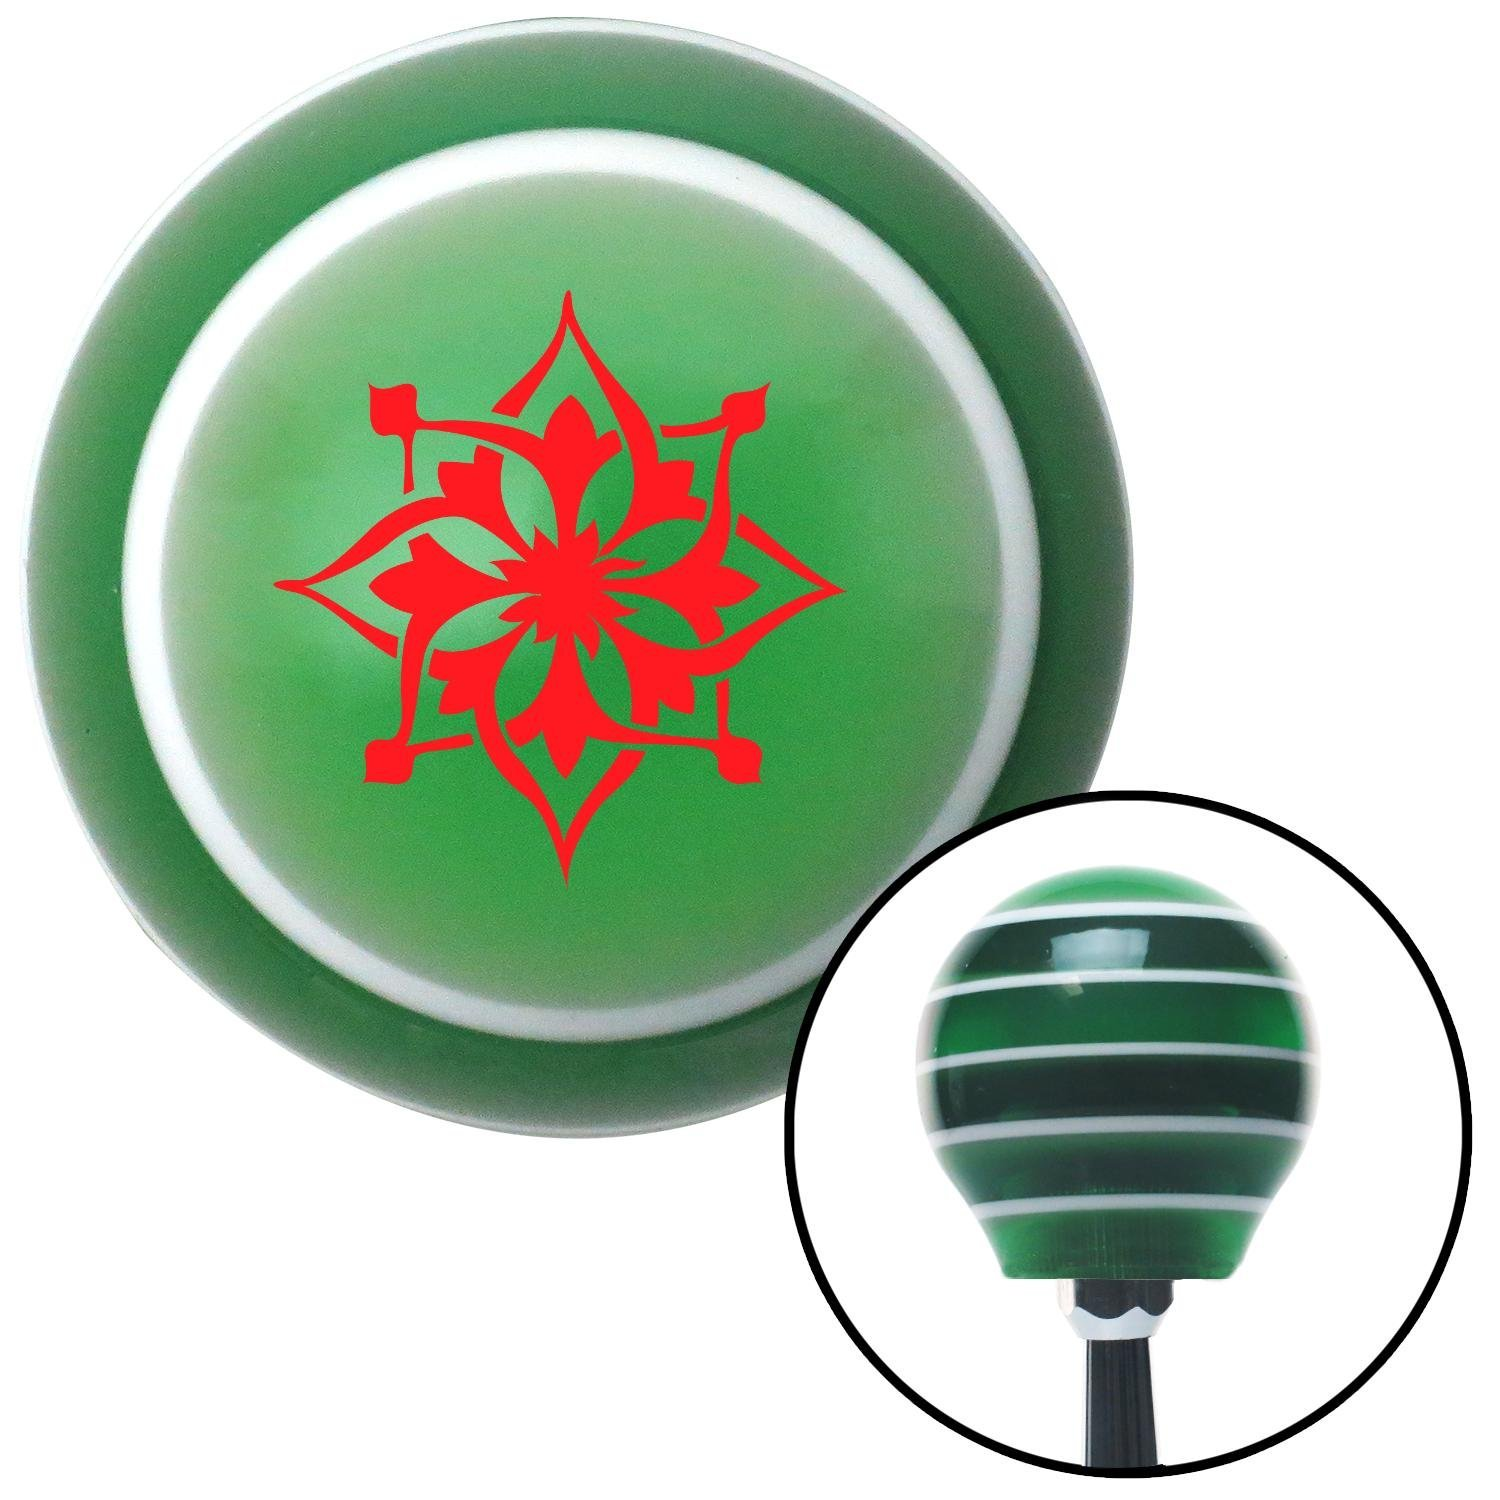 Red Hawaiian Flower #5 American Shifter 122930 Green Stripe Shift Knob with M16 x 1.5 Insert